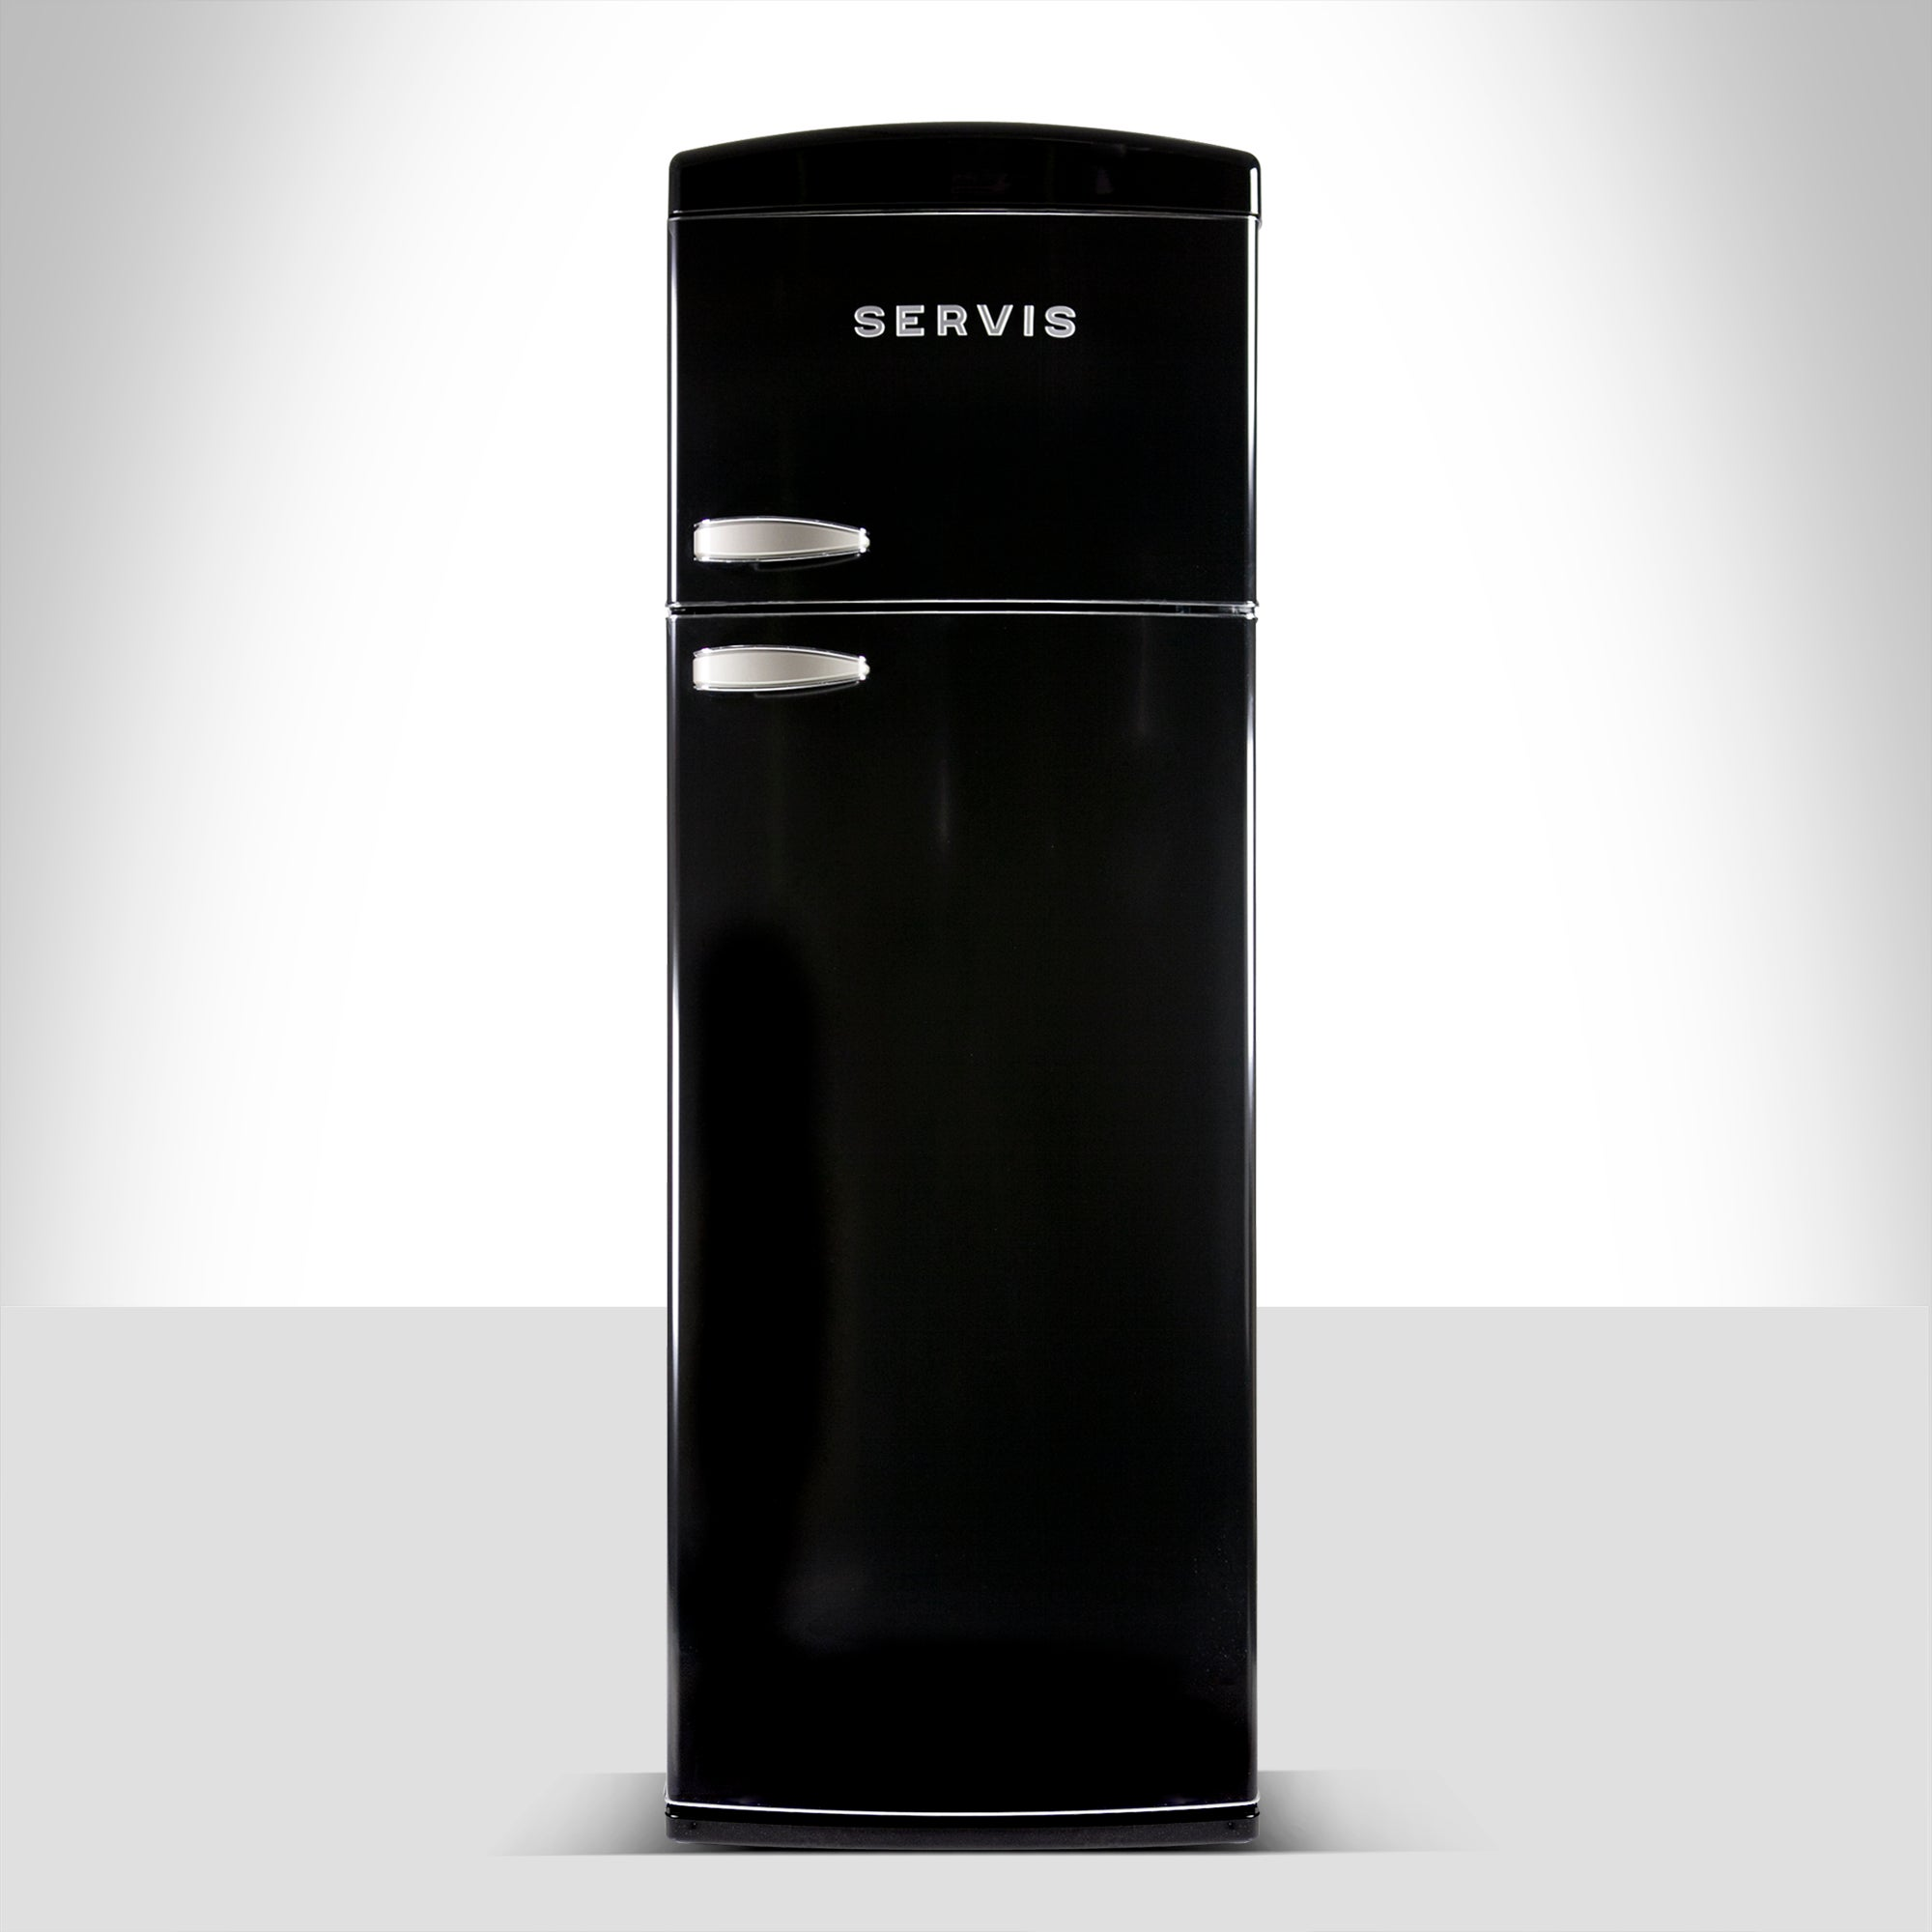 Servis T60170B Black Retro Style Topmount Fridge Freezer Black